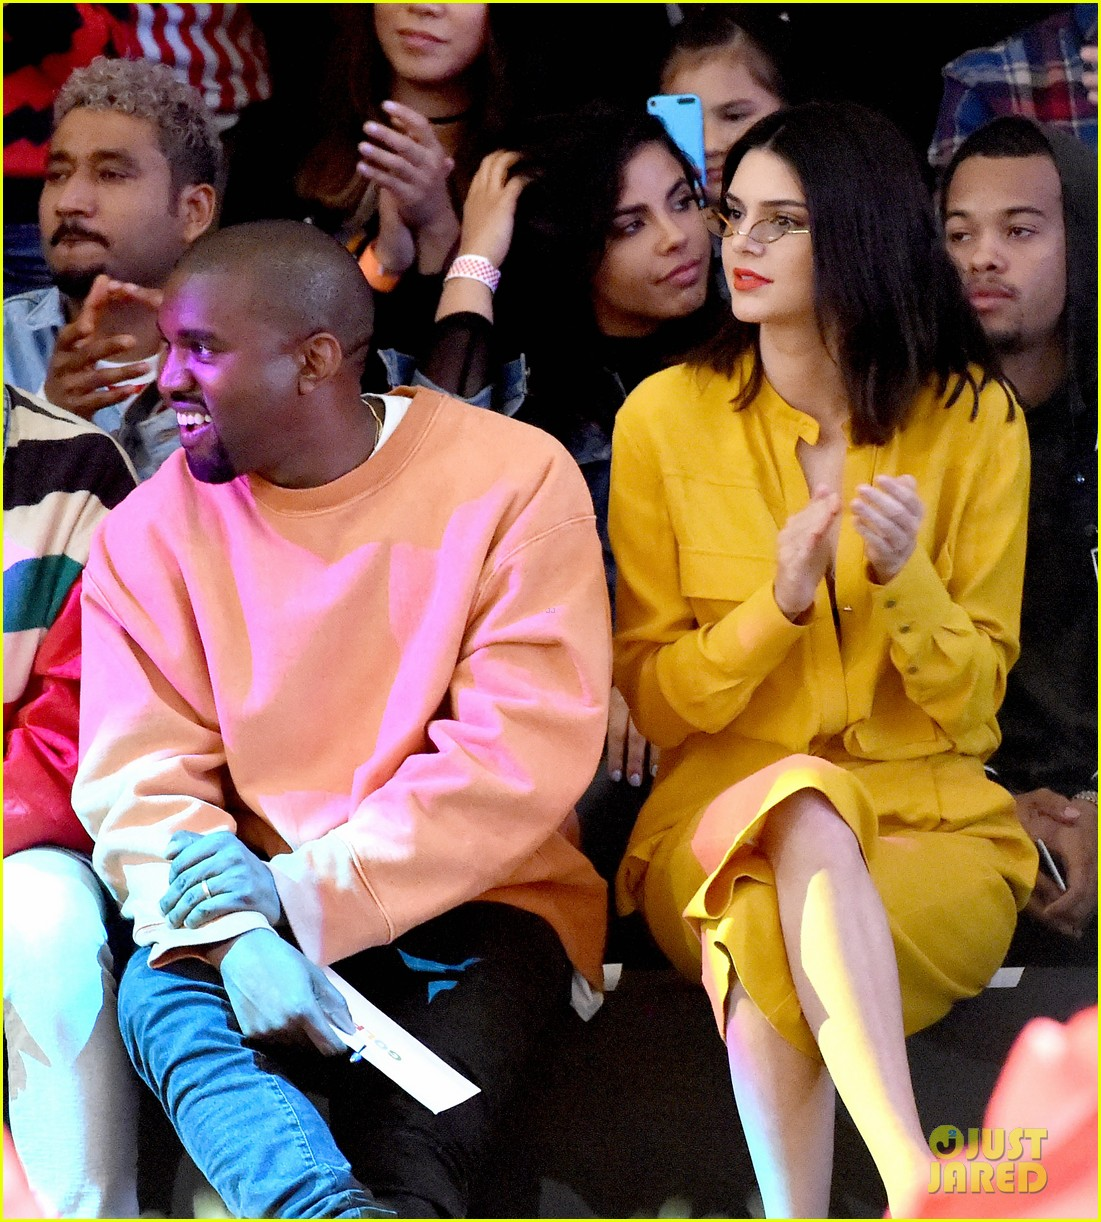 cole dylan sprouse kanye west kendall jenner tyler creator la show 123680249